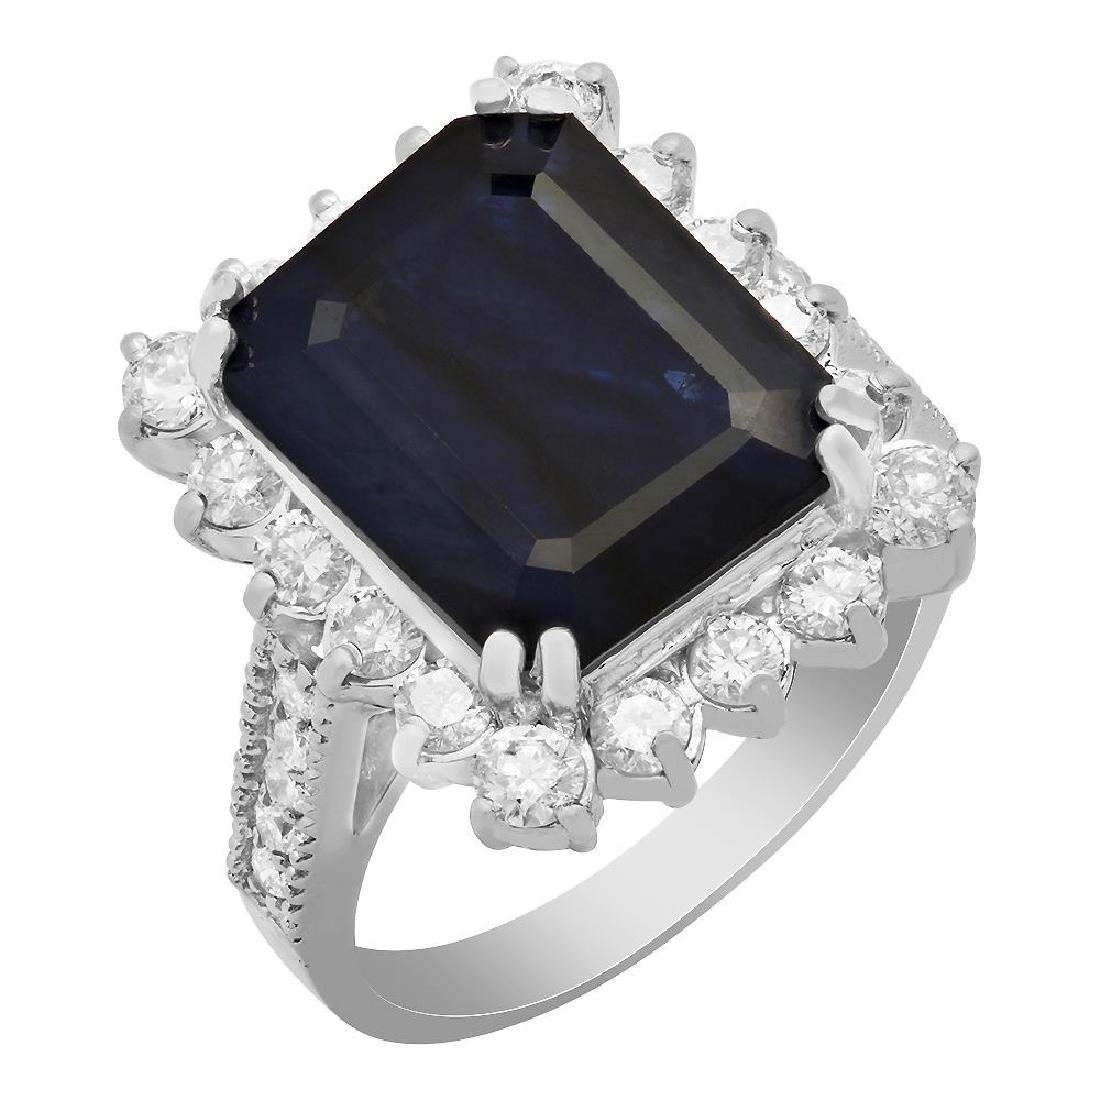 14k White Gold 7.18ct Sapphire 1.27ct Diamond Ring